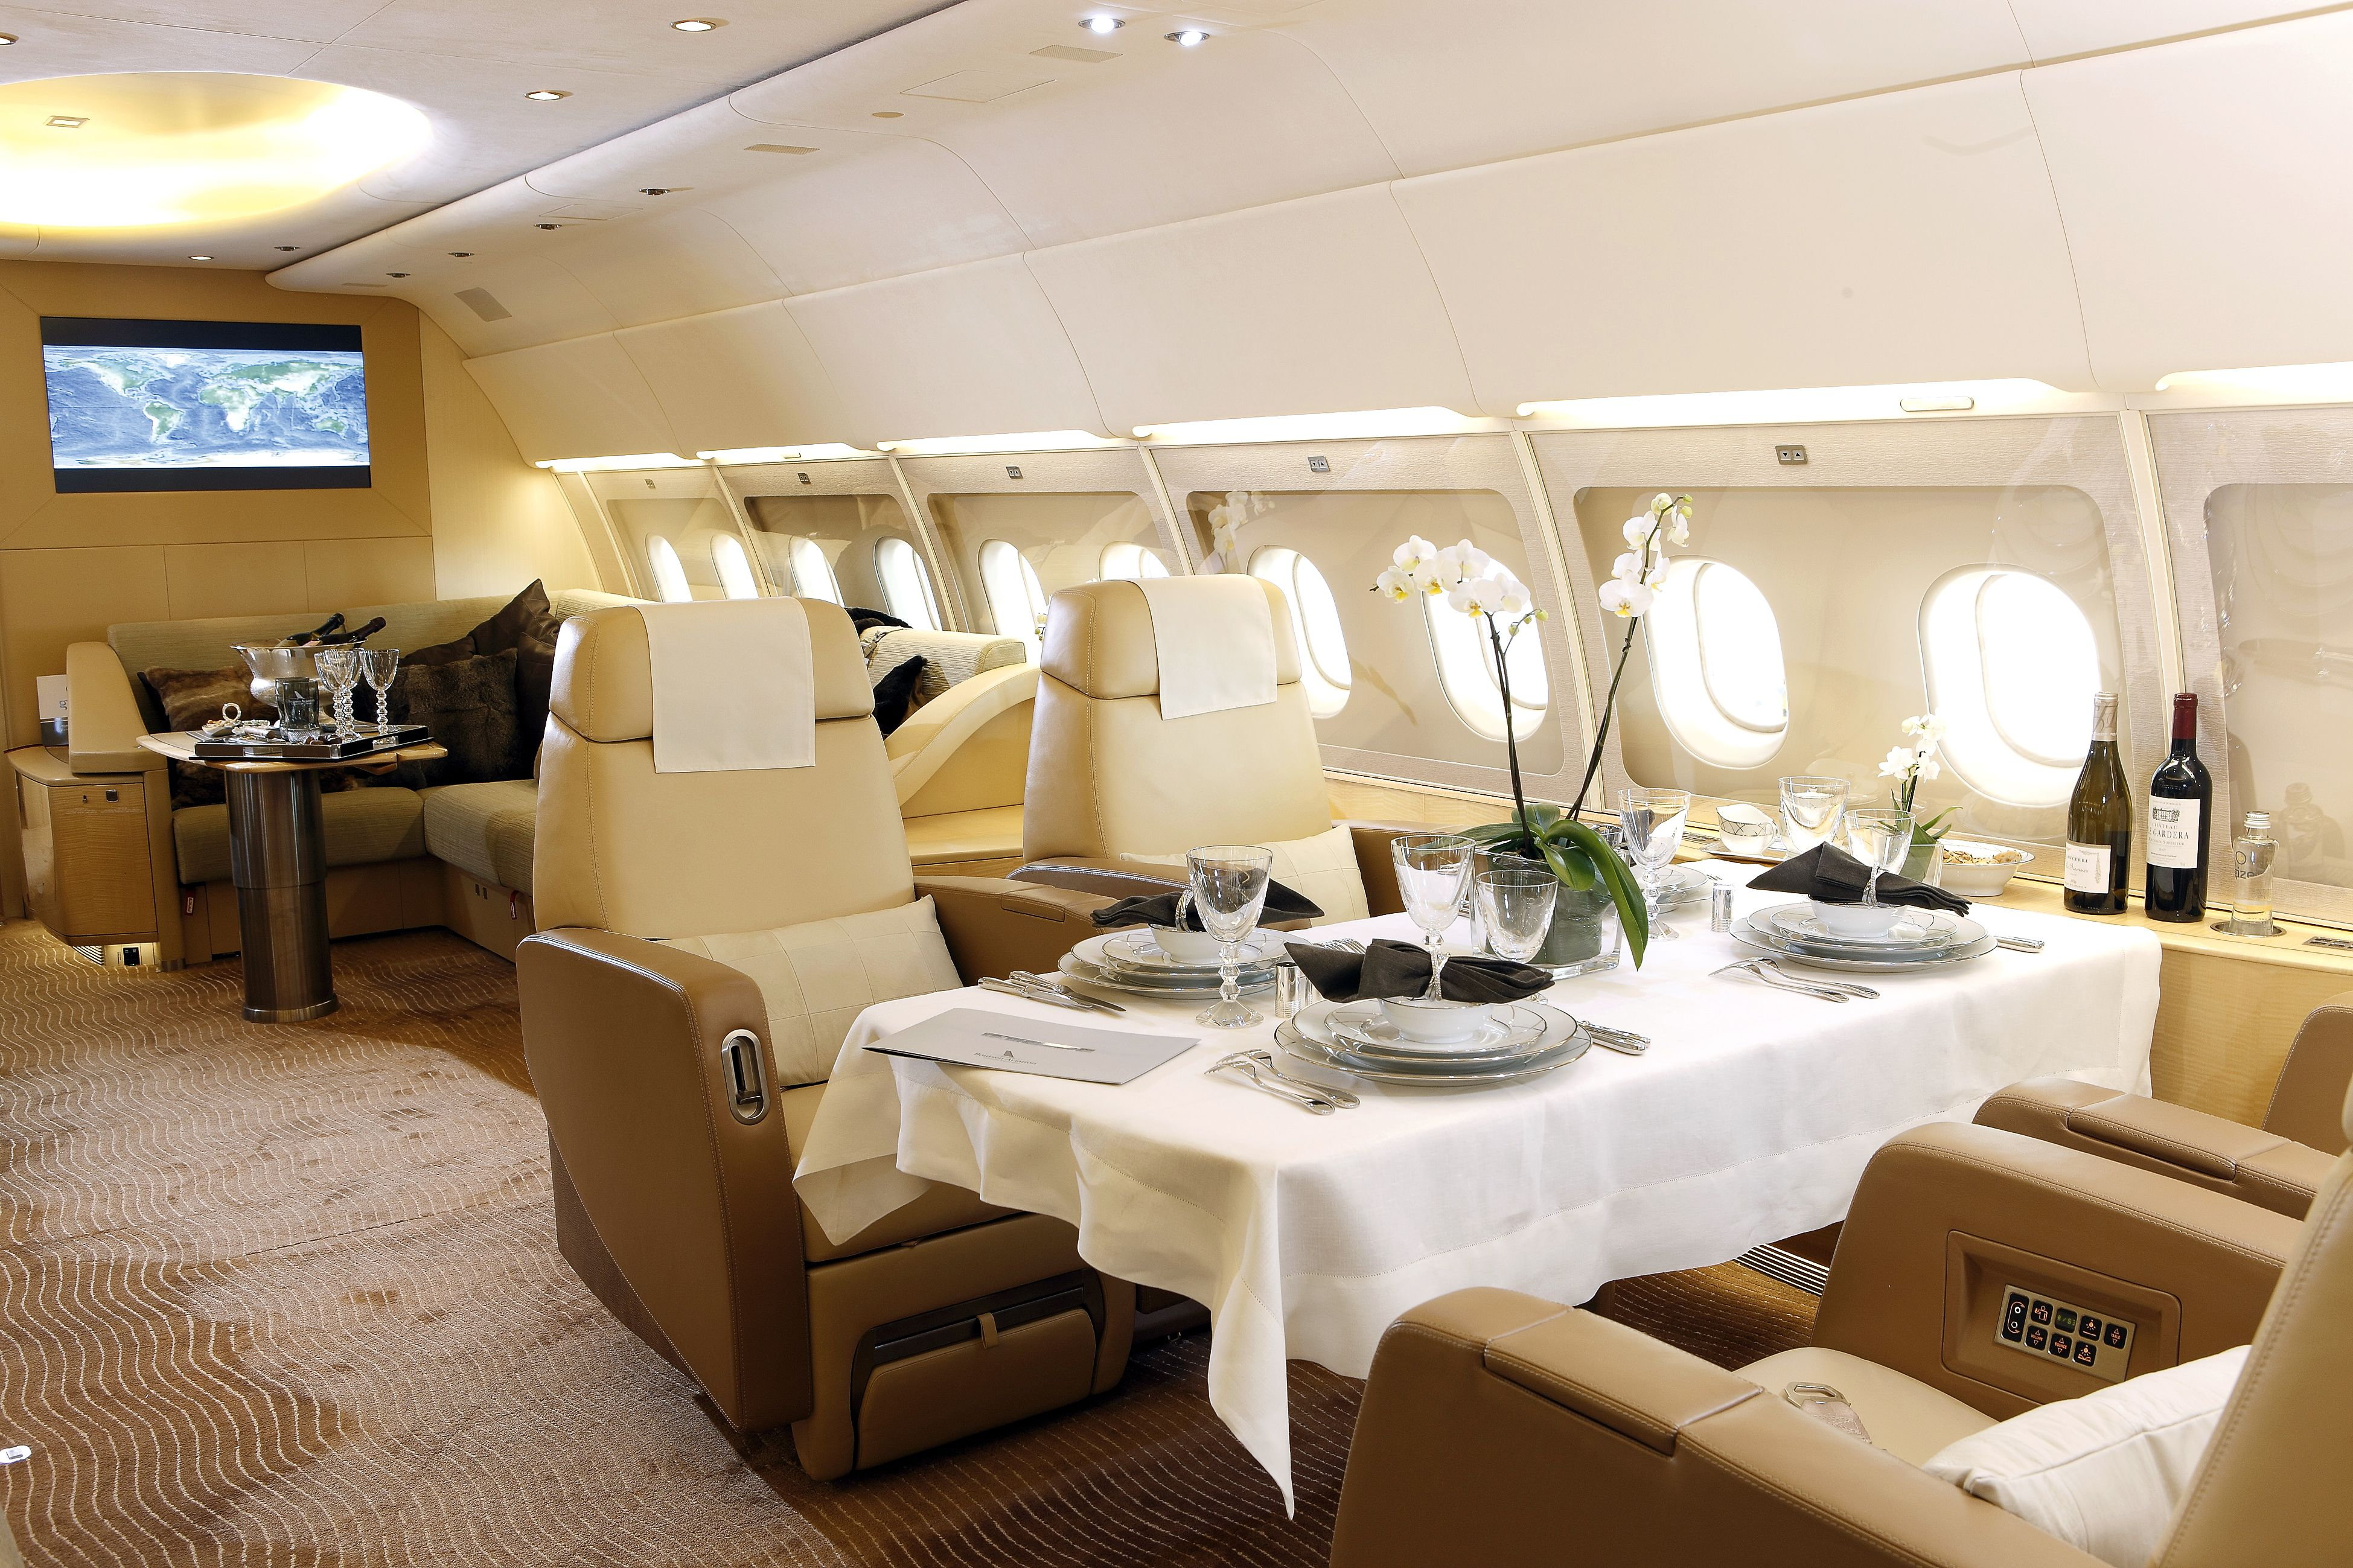 Airbus A319 Corporate Jet Available for Charter. Travel